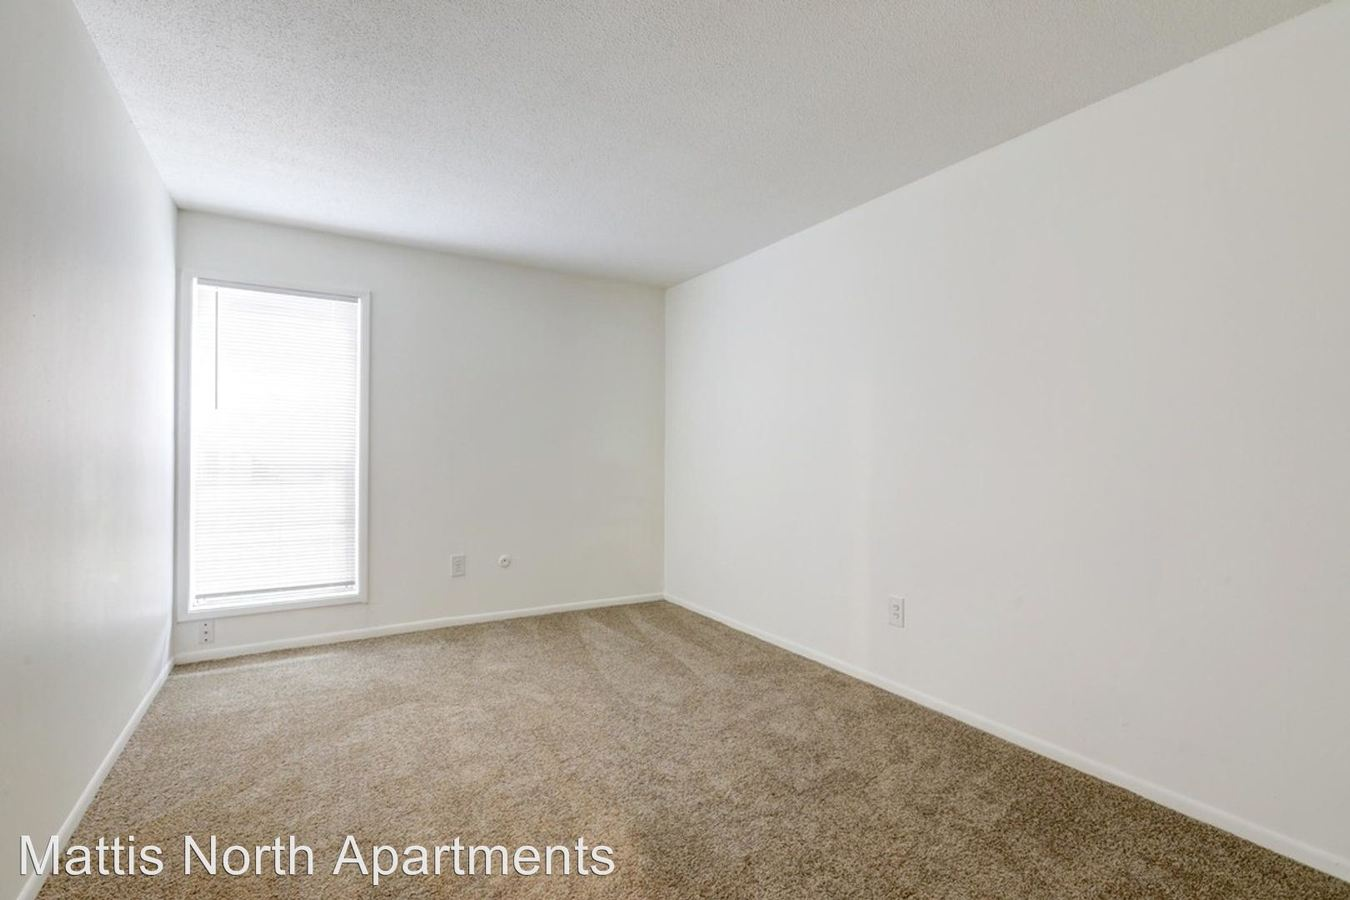 2 Bedrooms 1 Bathroom Apartment for rent at 2006 N. Mattis Avenue in Champaign, IL